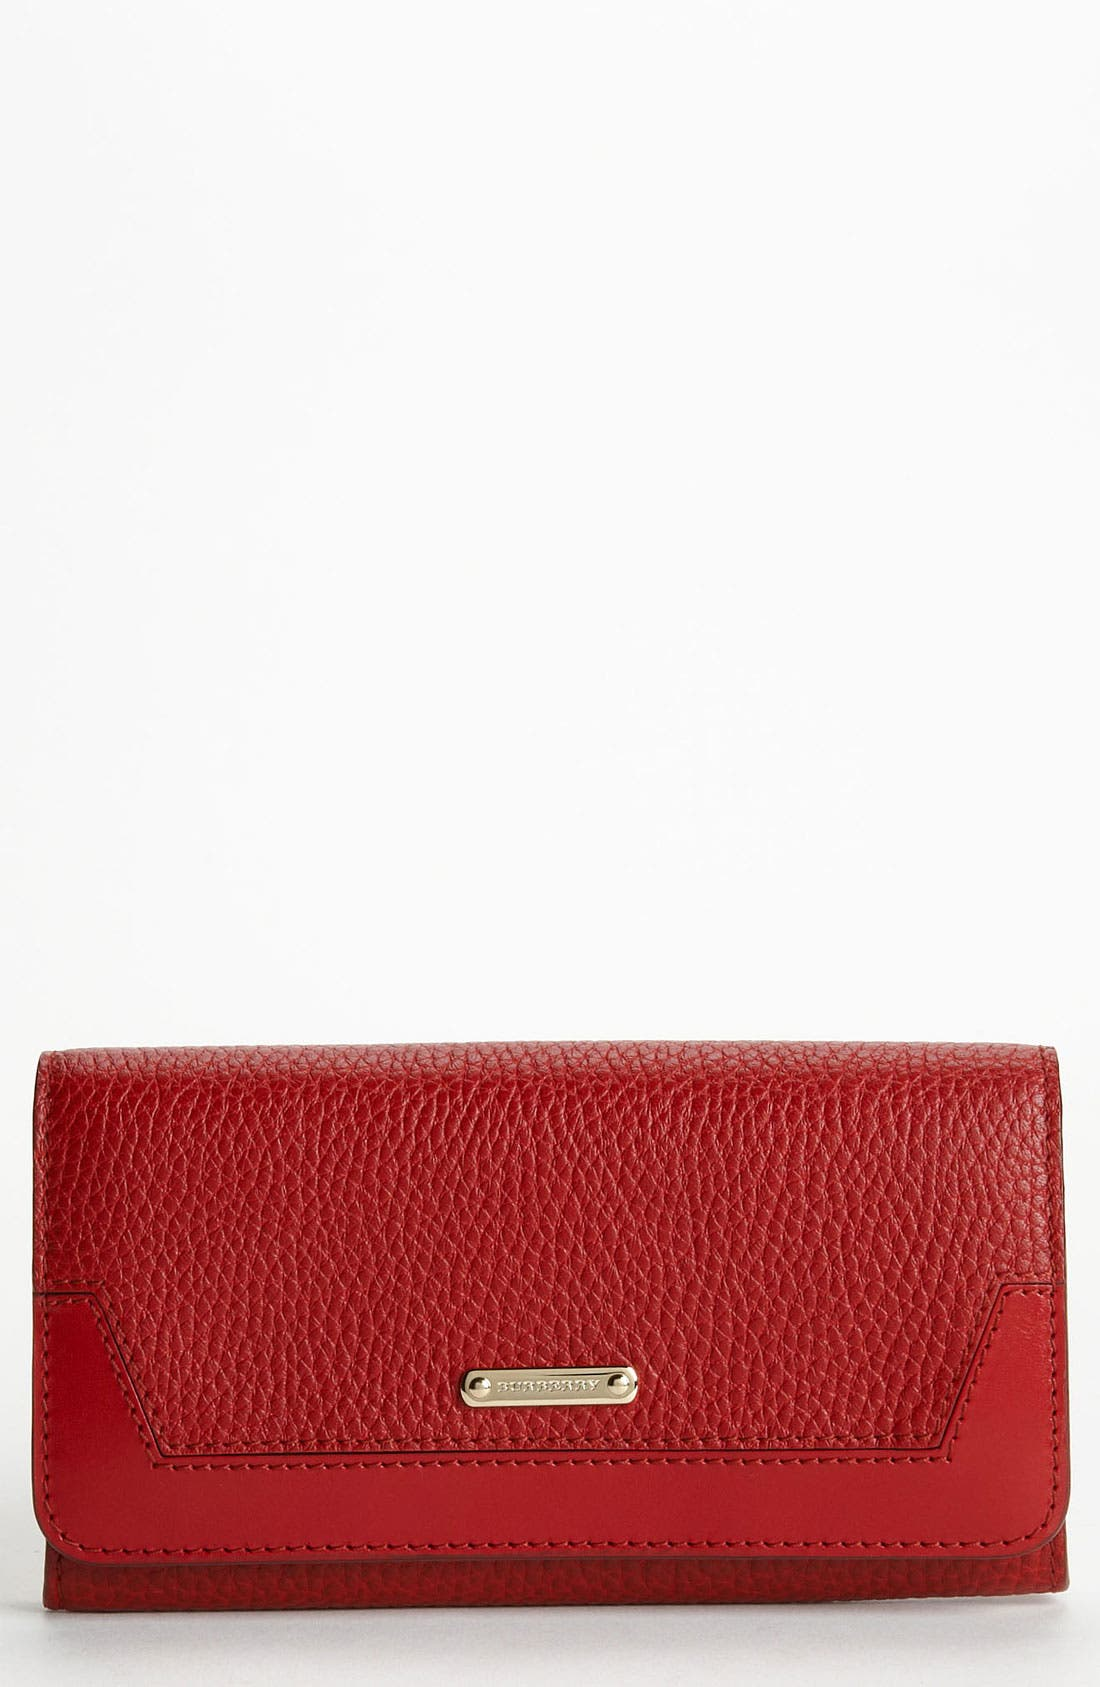 Main Image - Burberry 'London Grainy' Flap Wallet